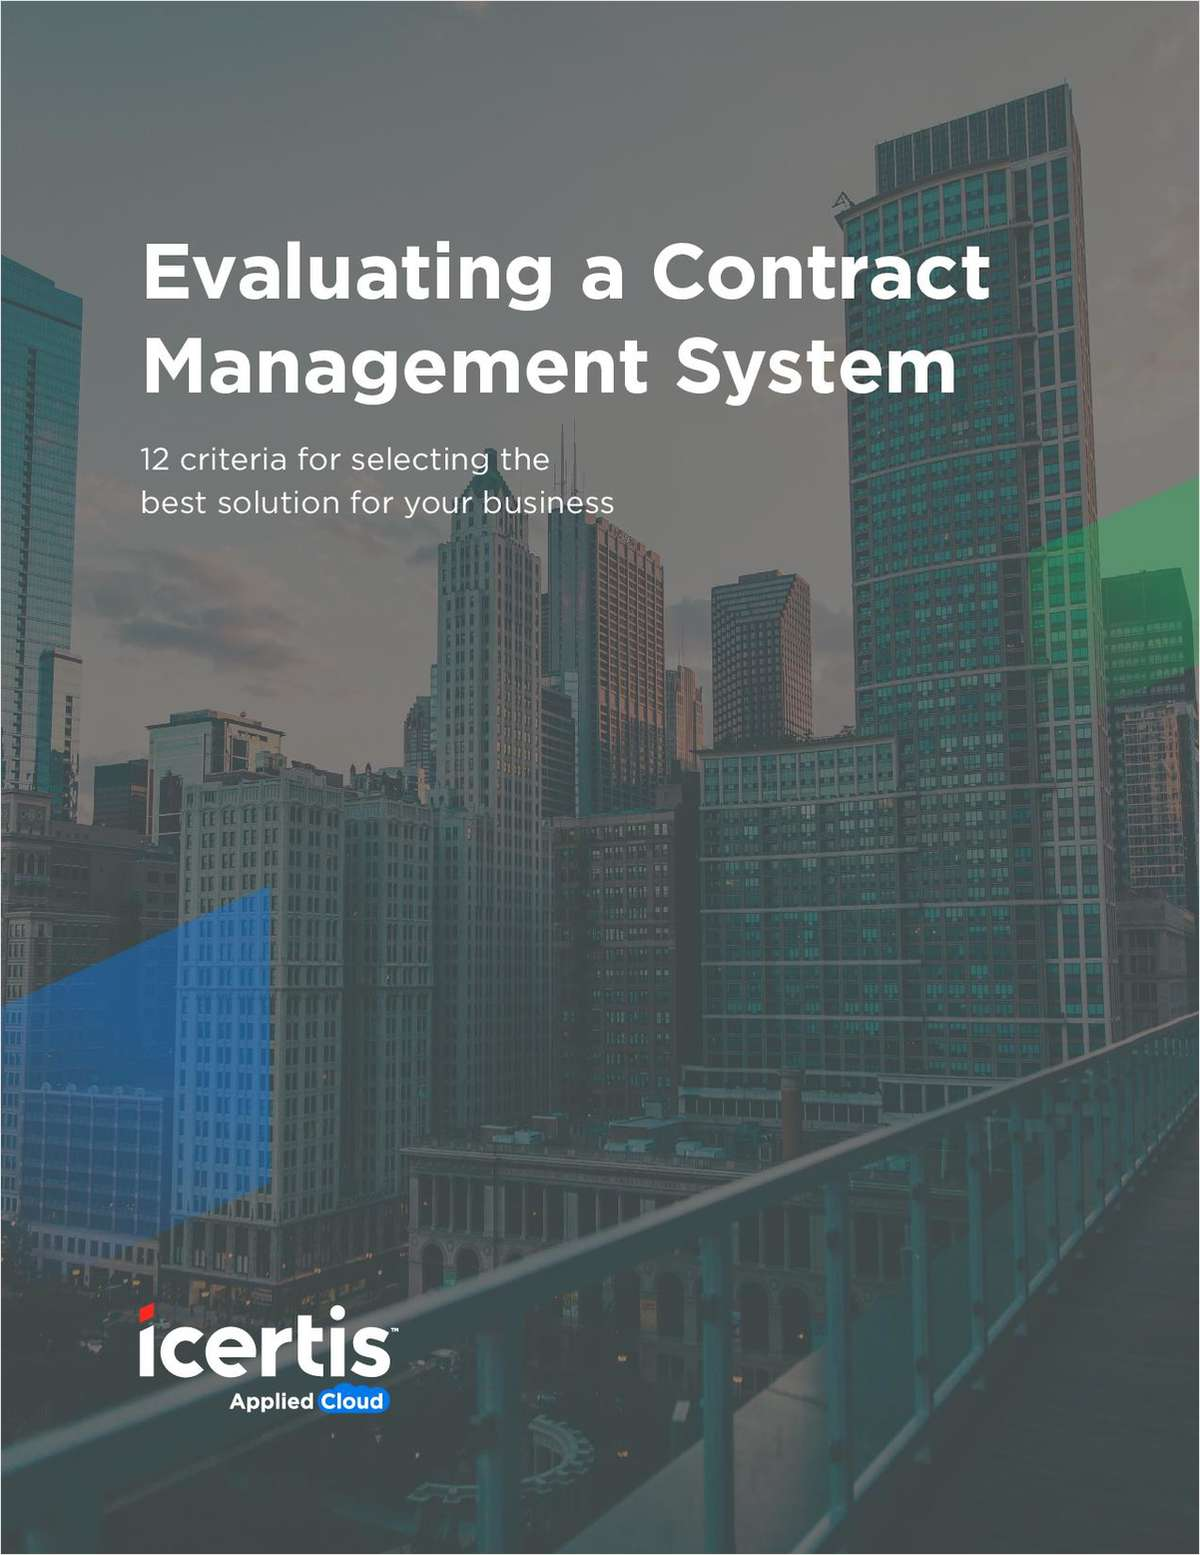 How to Select the Best Contract Management System Using These 12 Criteria